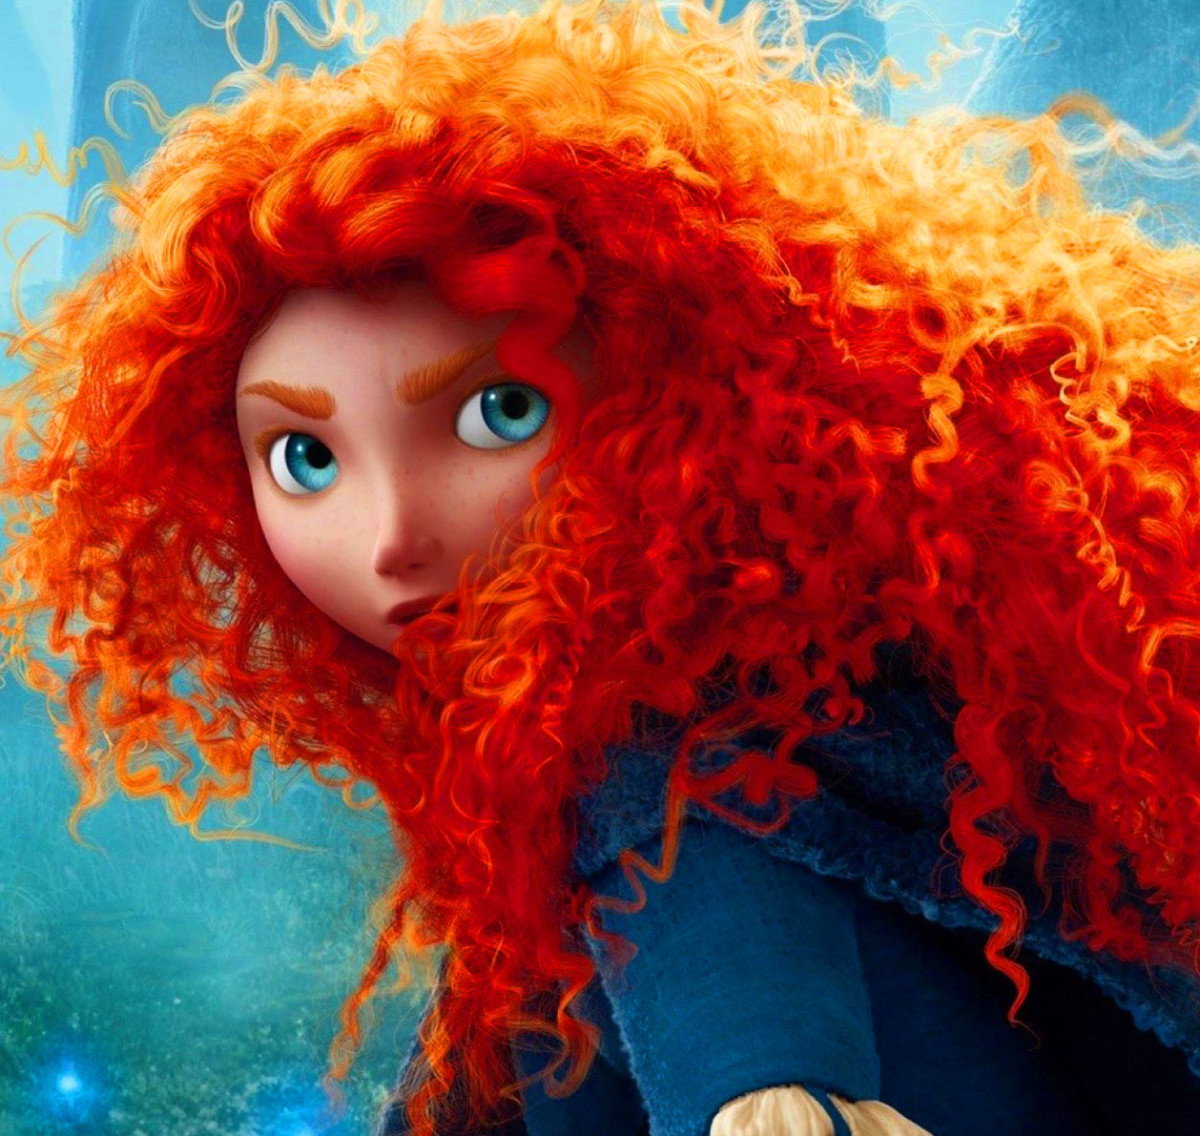 f is for flame buoyant how pixar made merida s brave hair misbehave